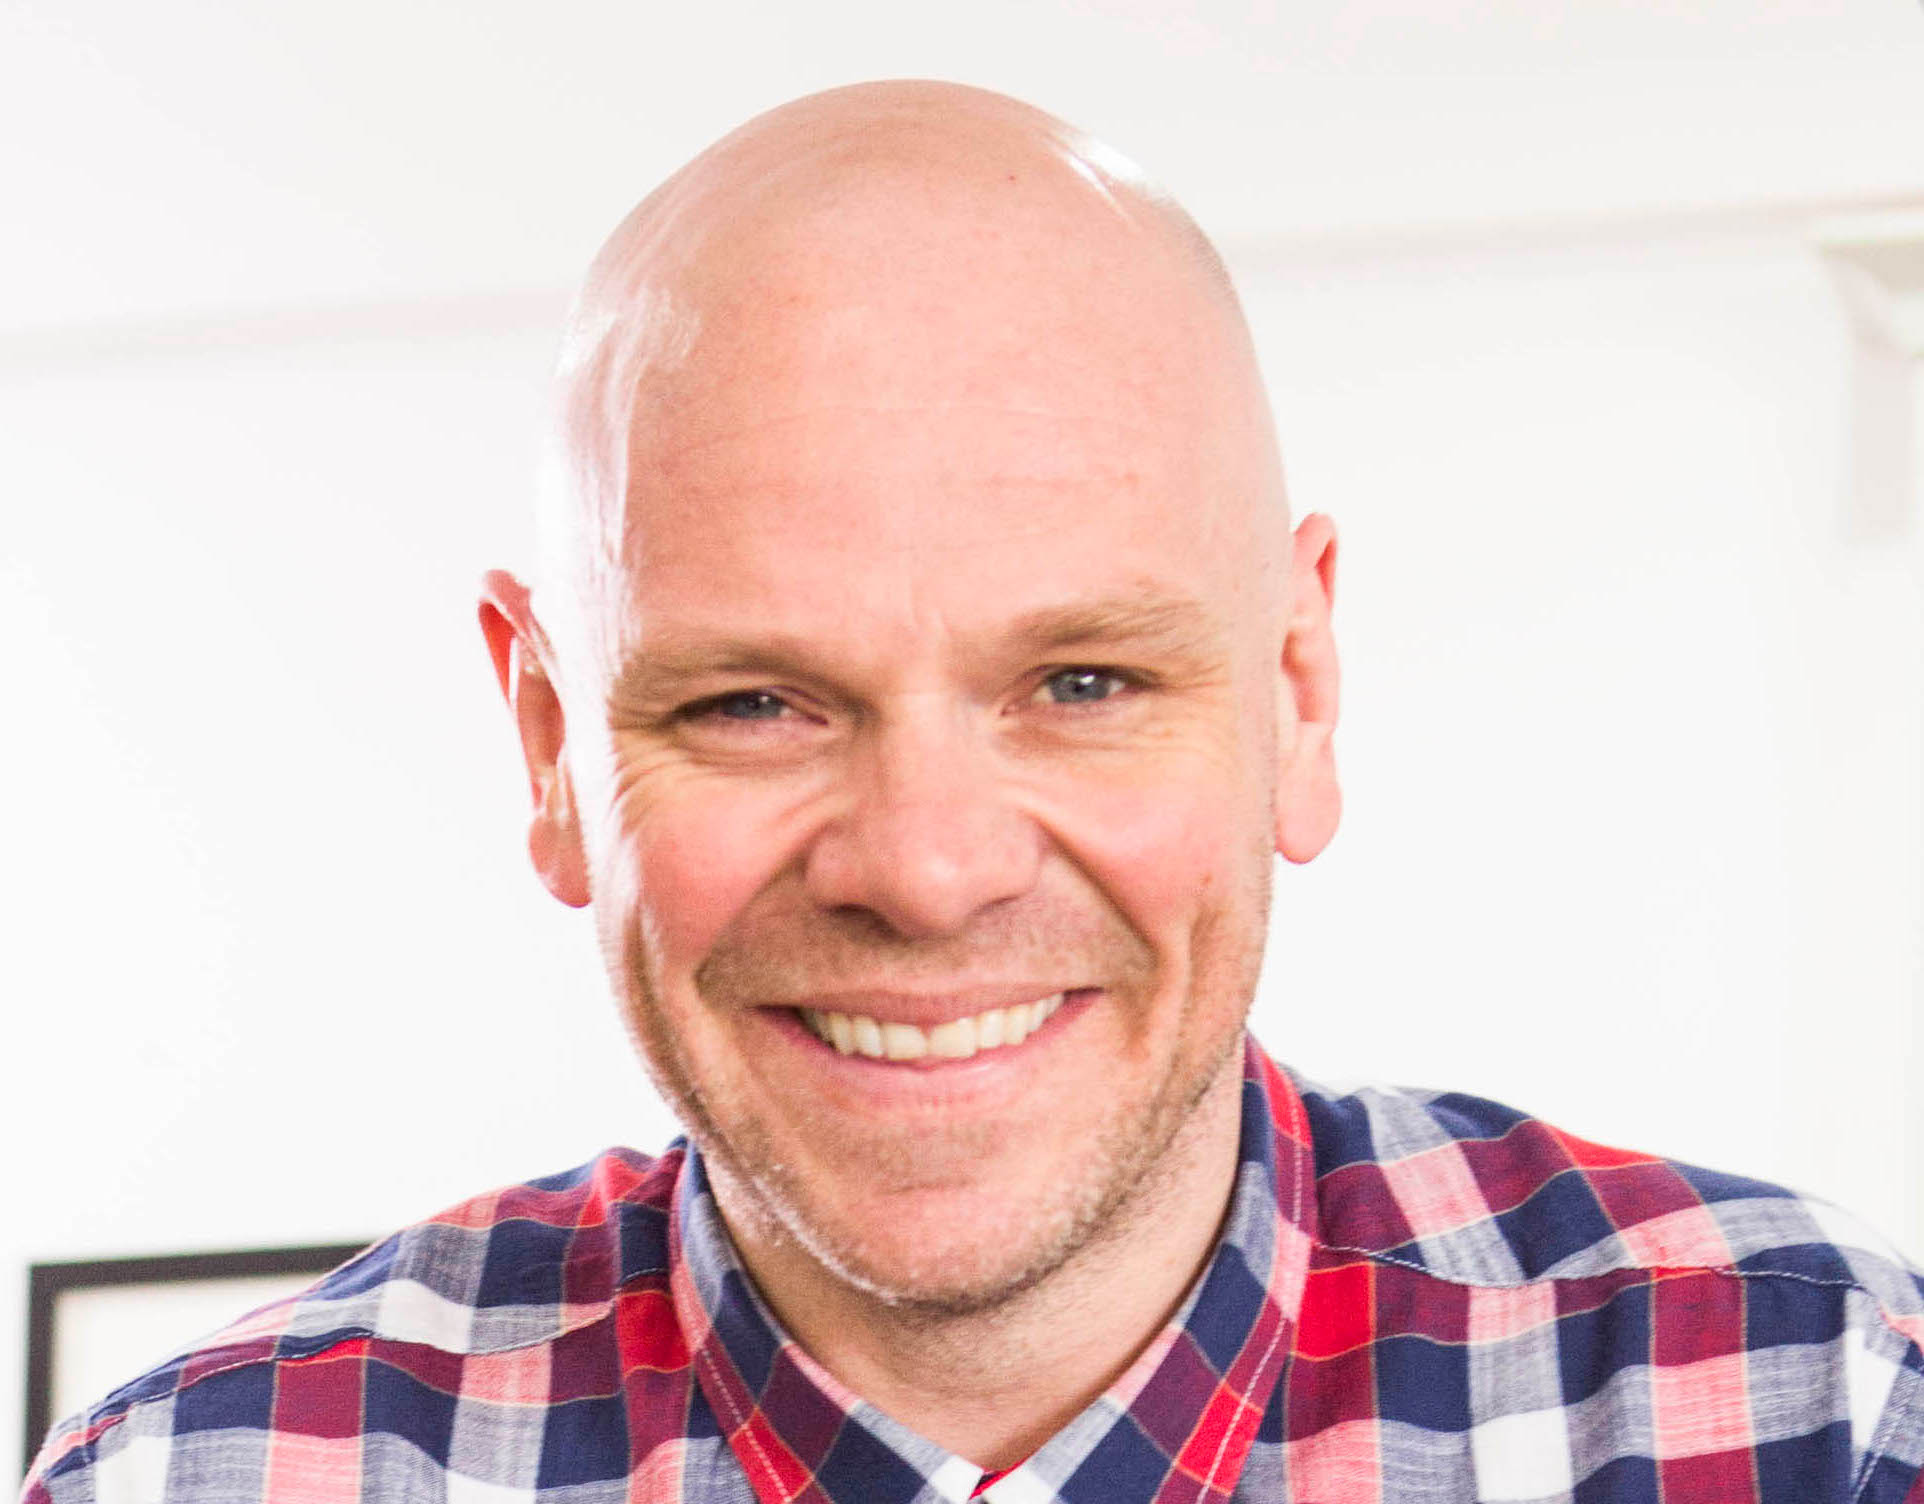 Tom kerridge large crop